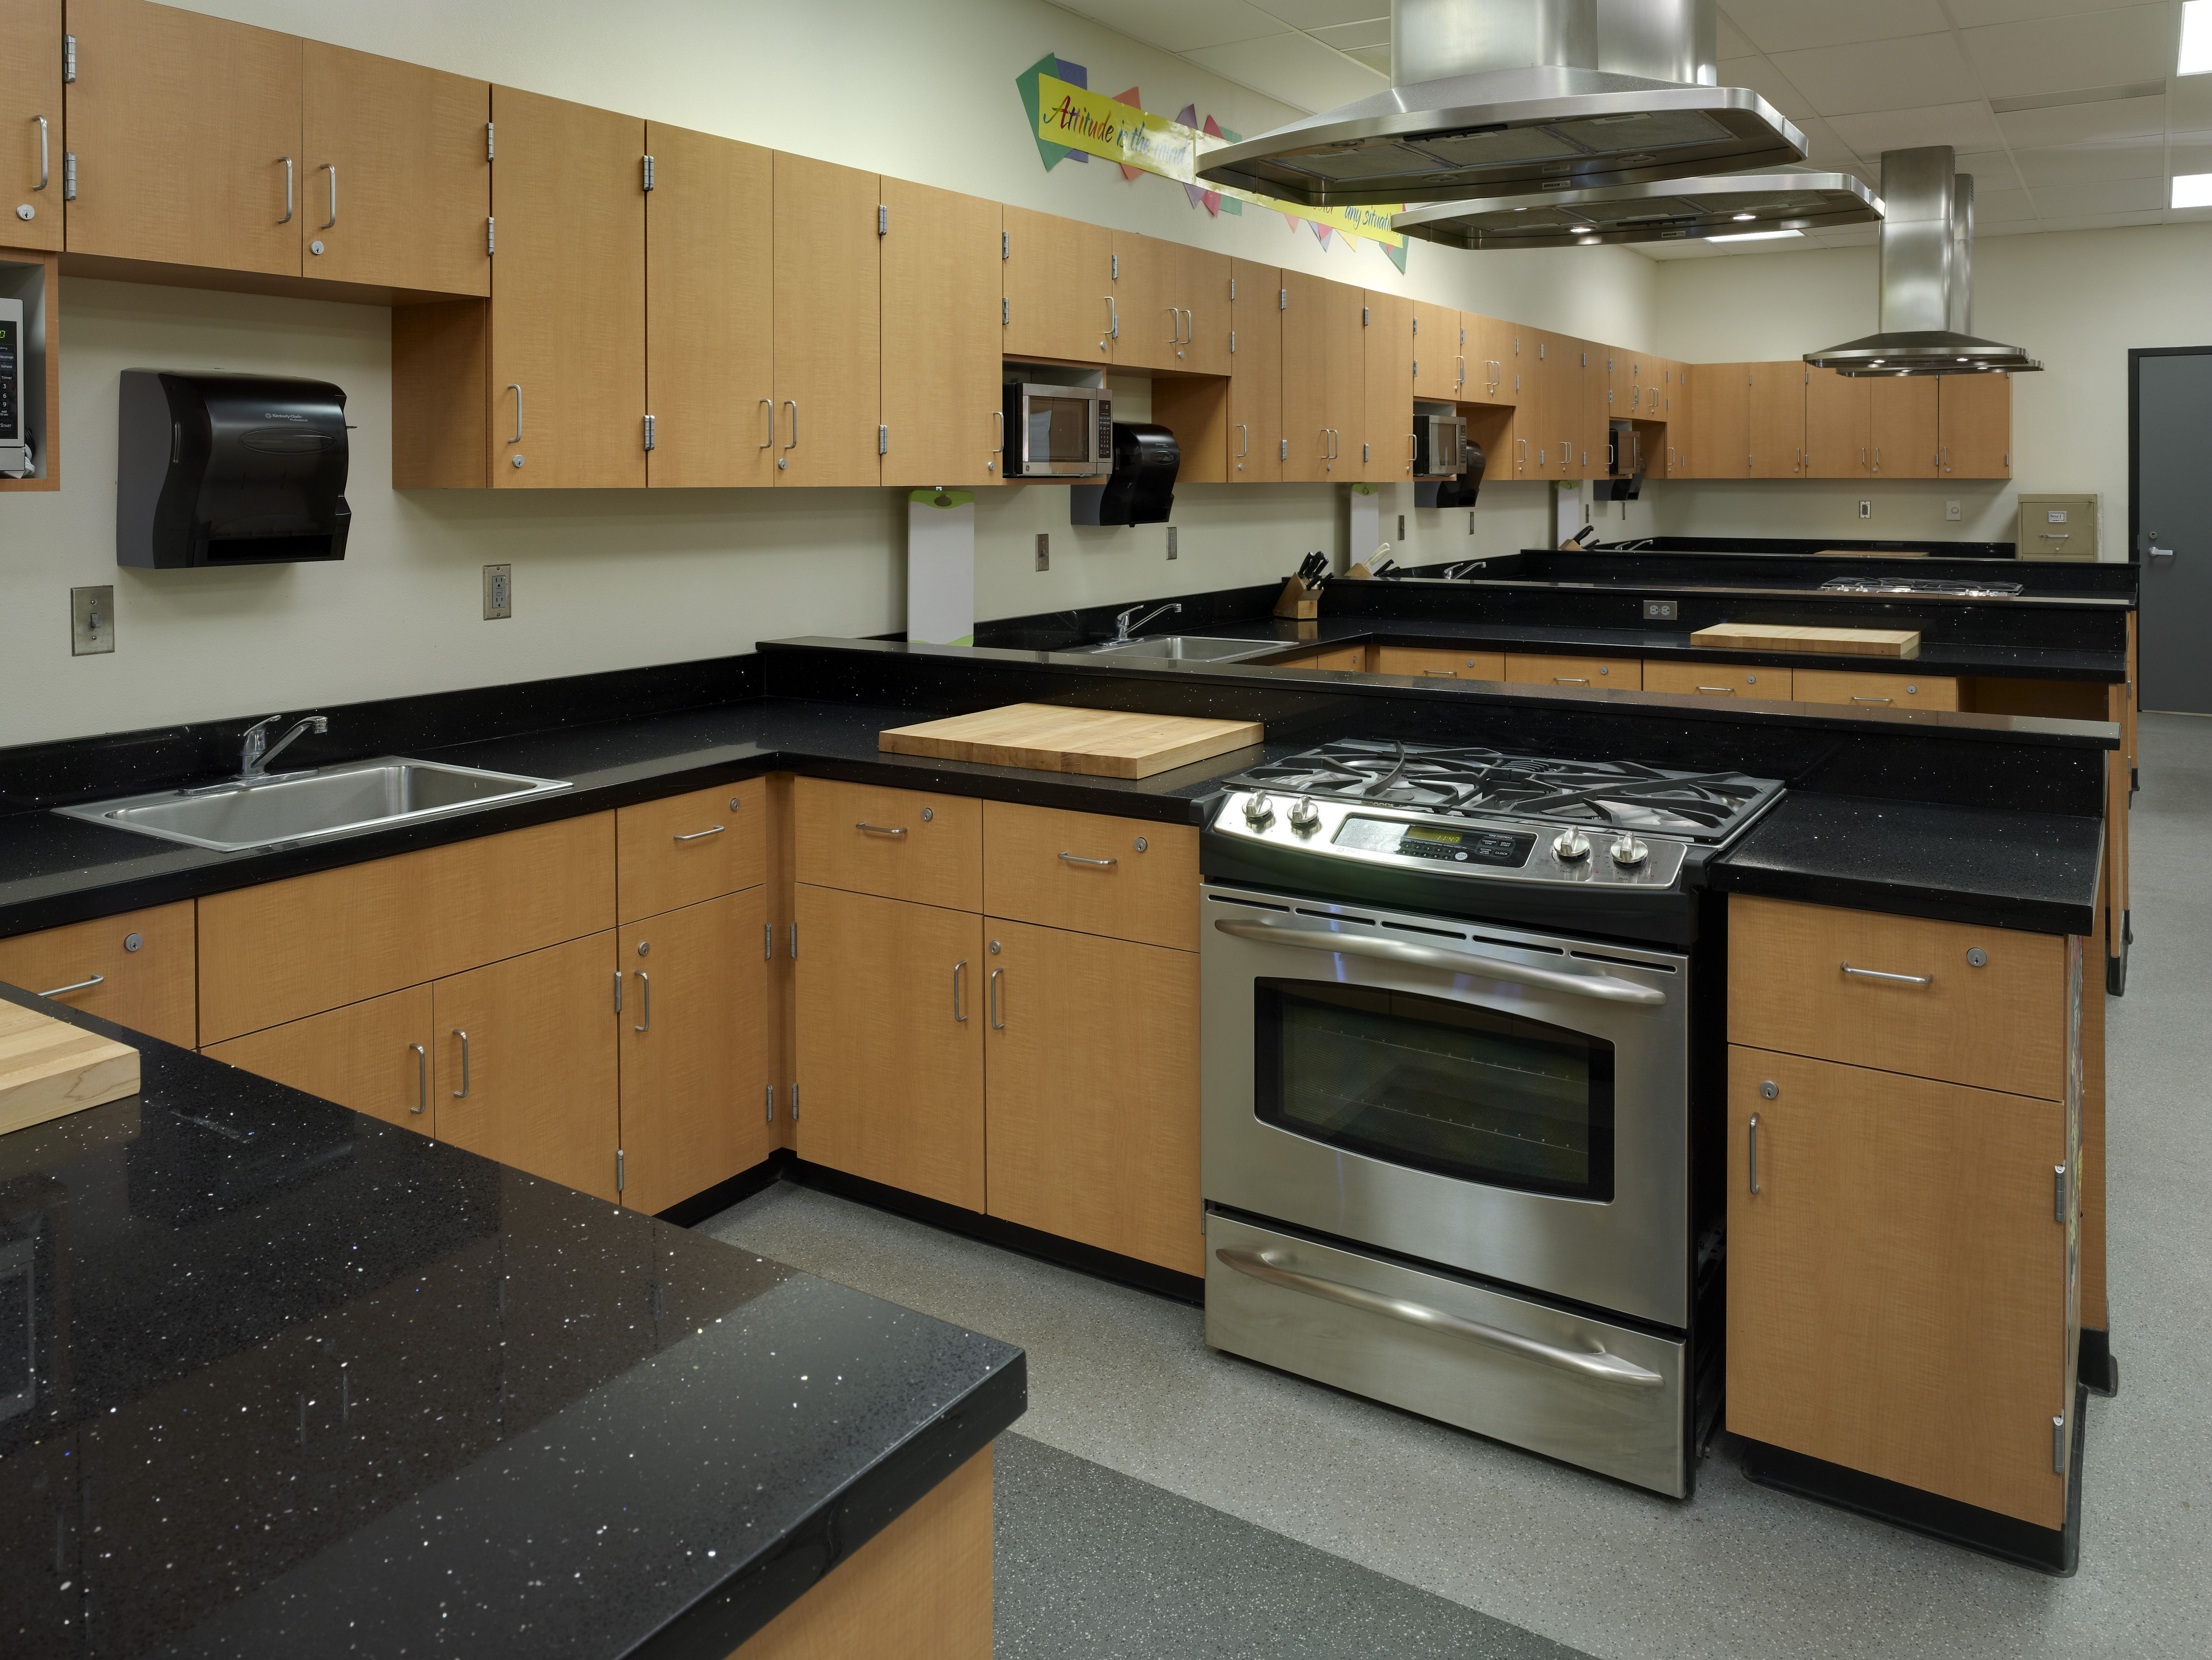 Hart high school cooking laboratory with images